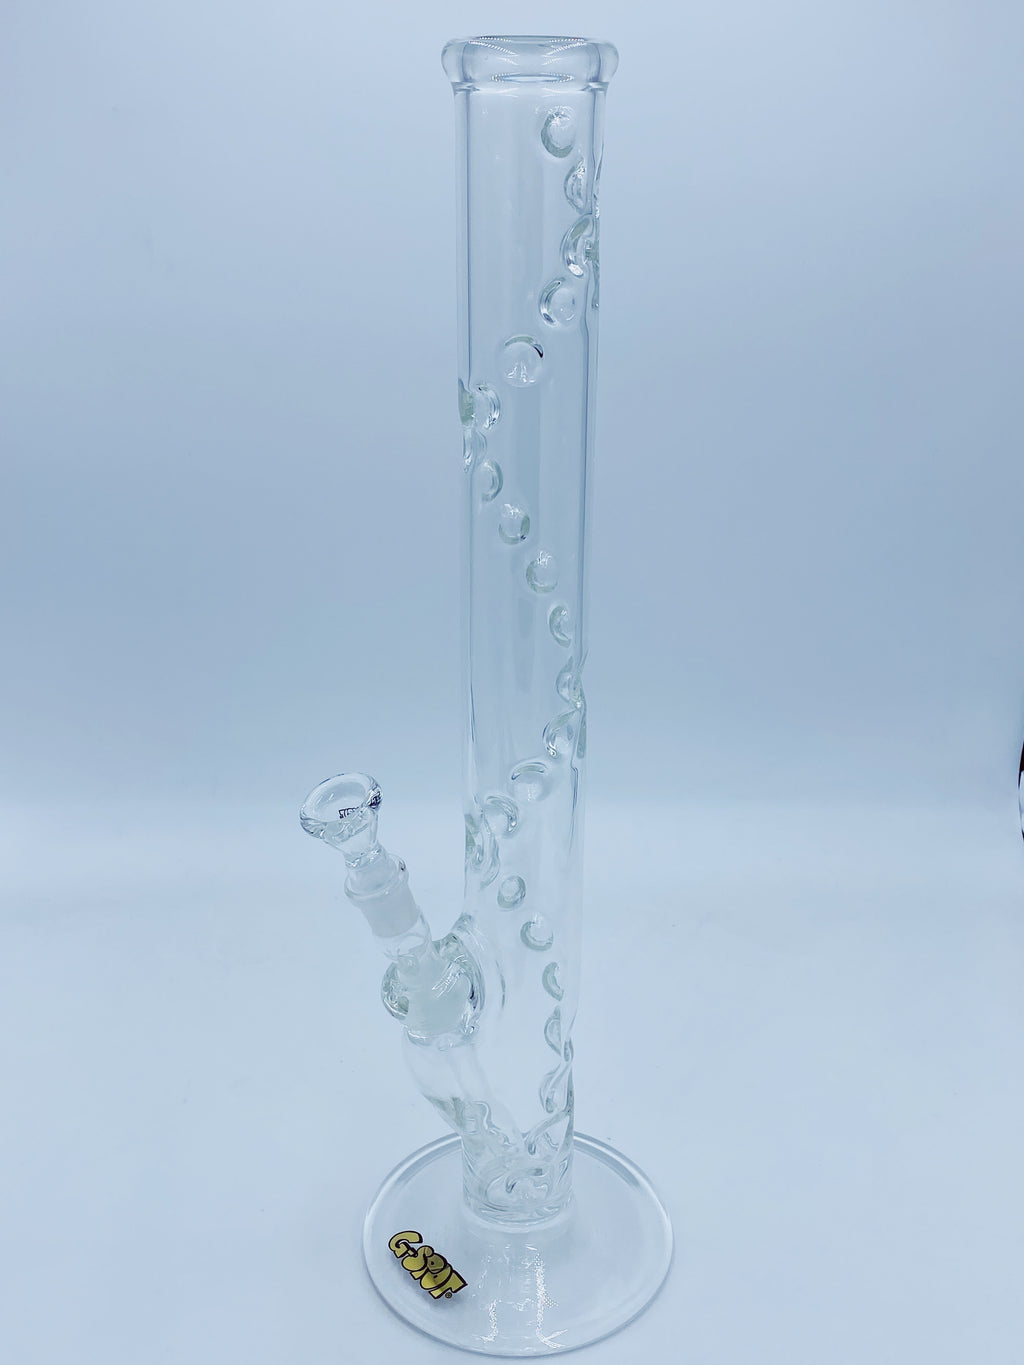 G SPOT 18 INCH STRAIGHT TUBE - Smoke Country - Land of the artistic glass blown bongs